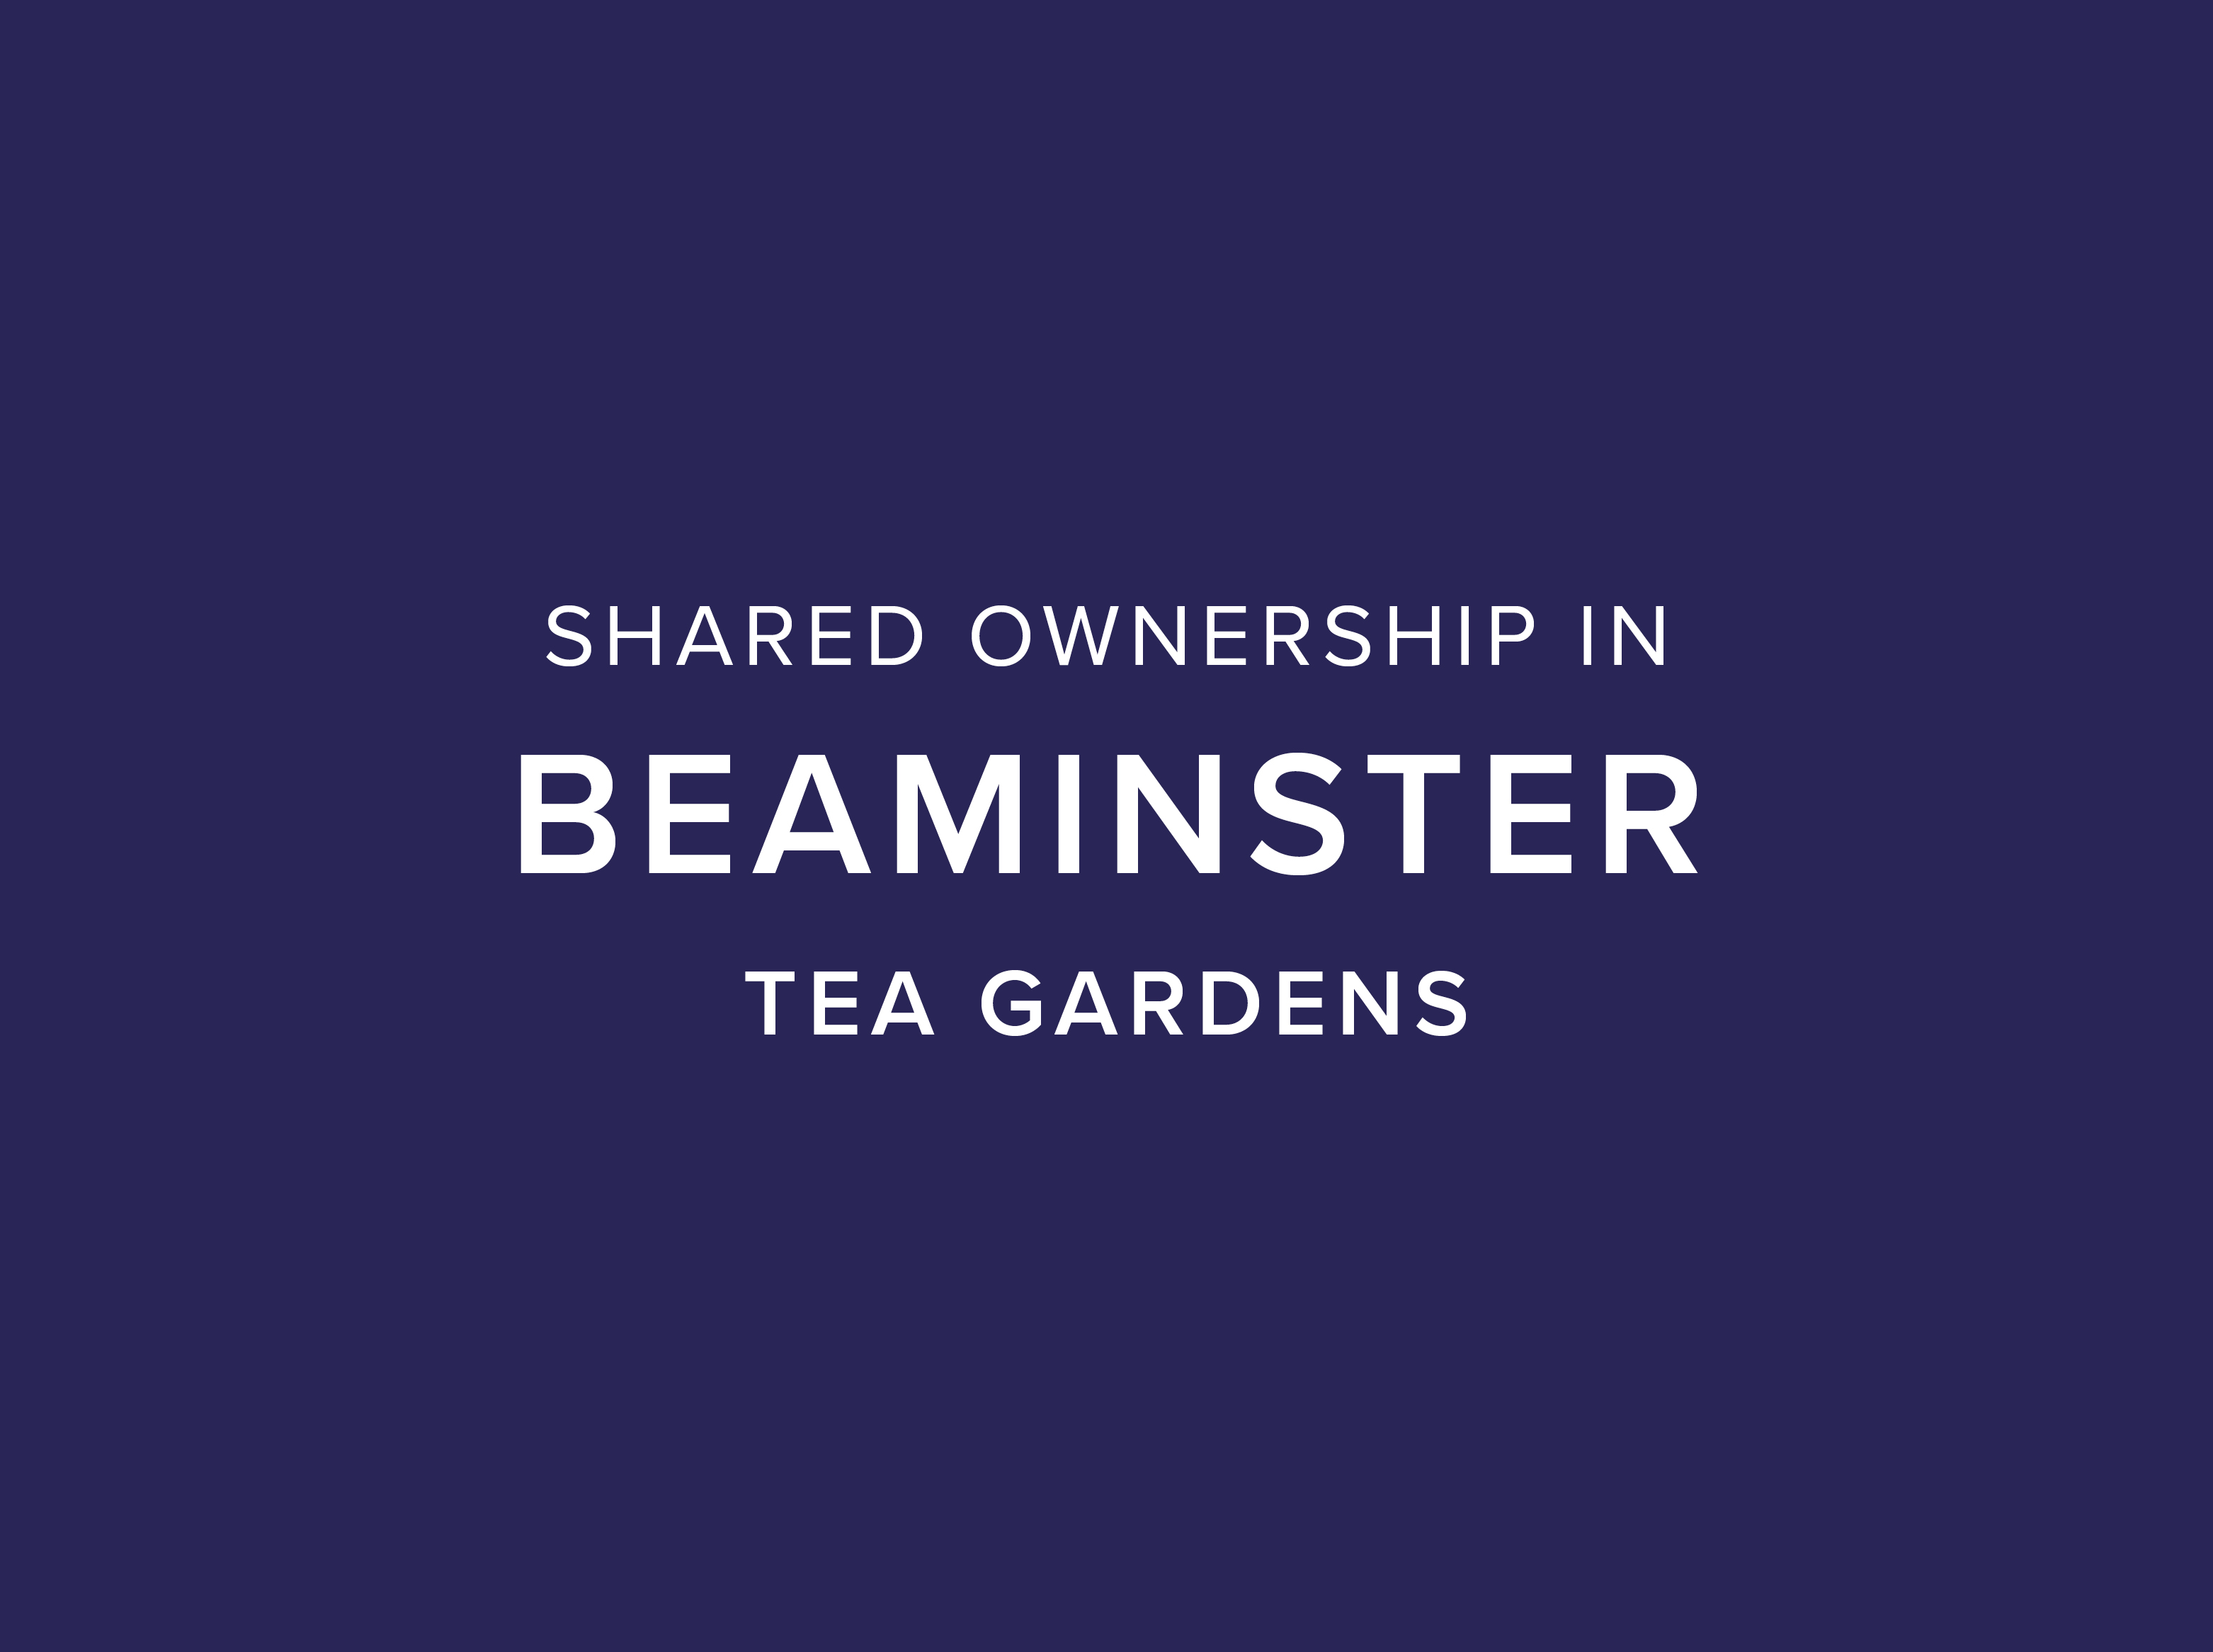 Tea Gardens, Beaminster